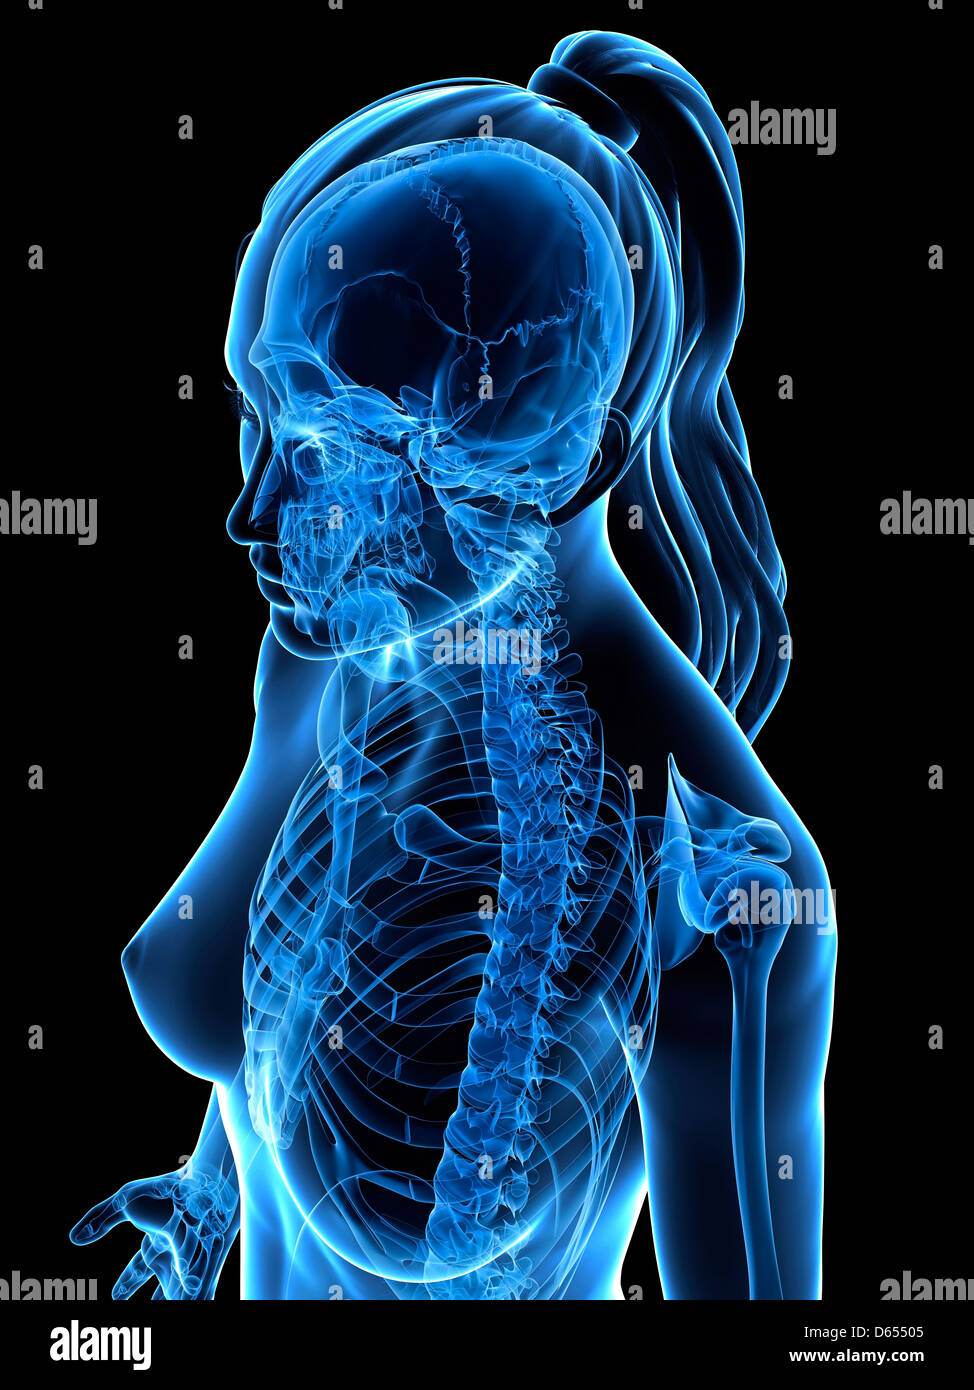 Female upper body, artwork - Stock Image